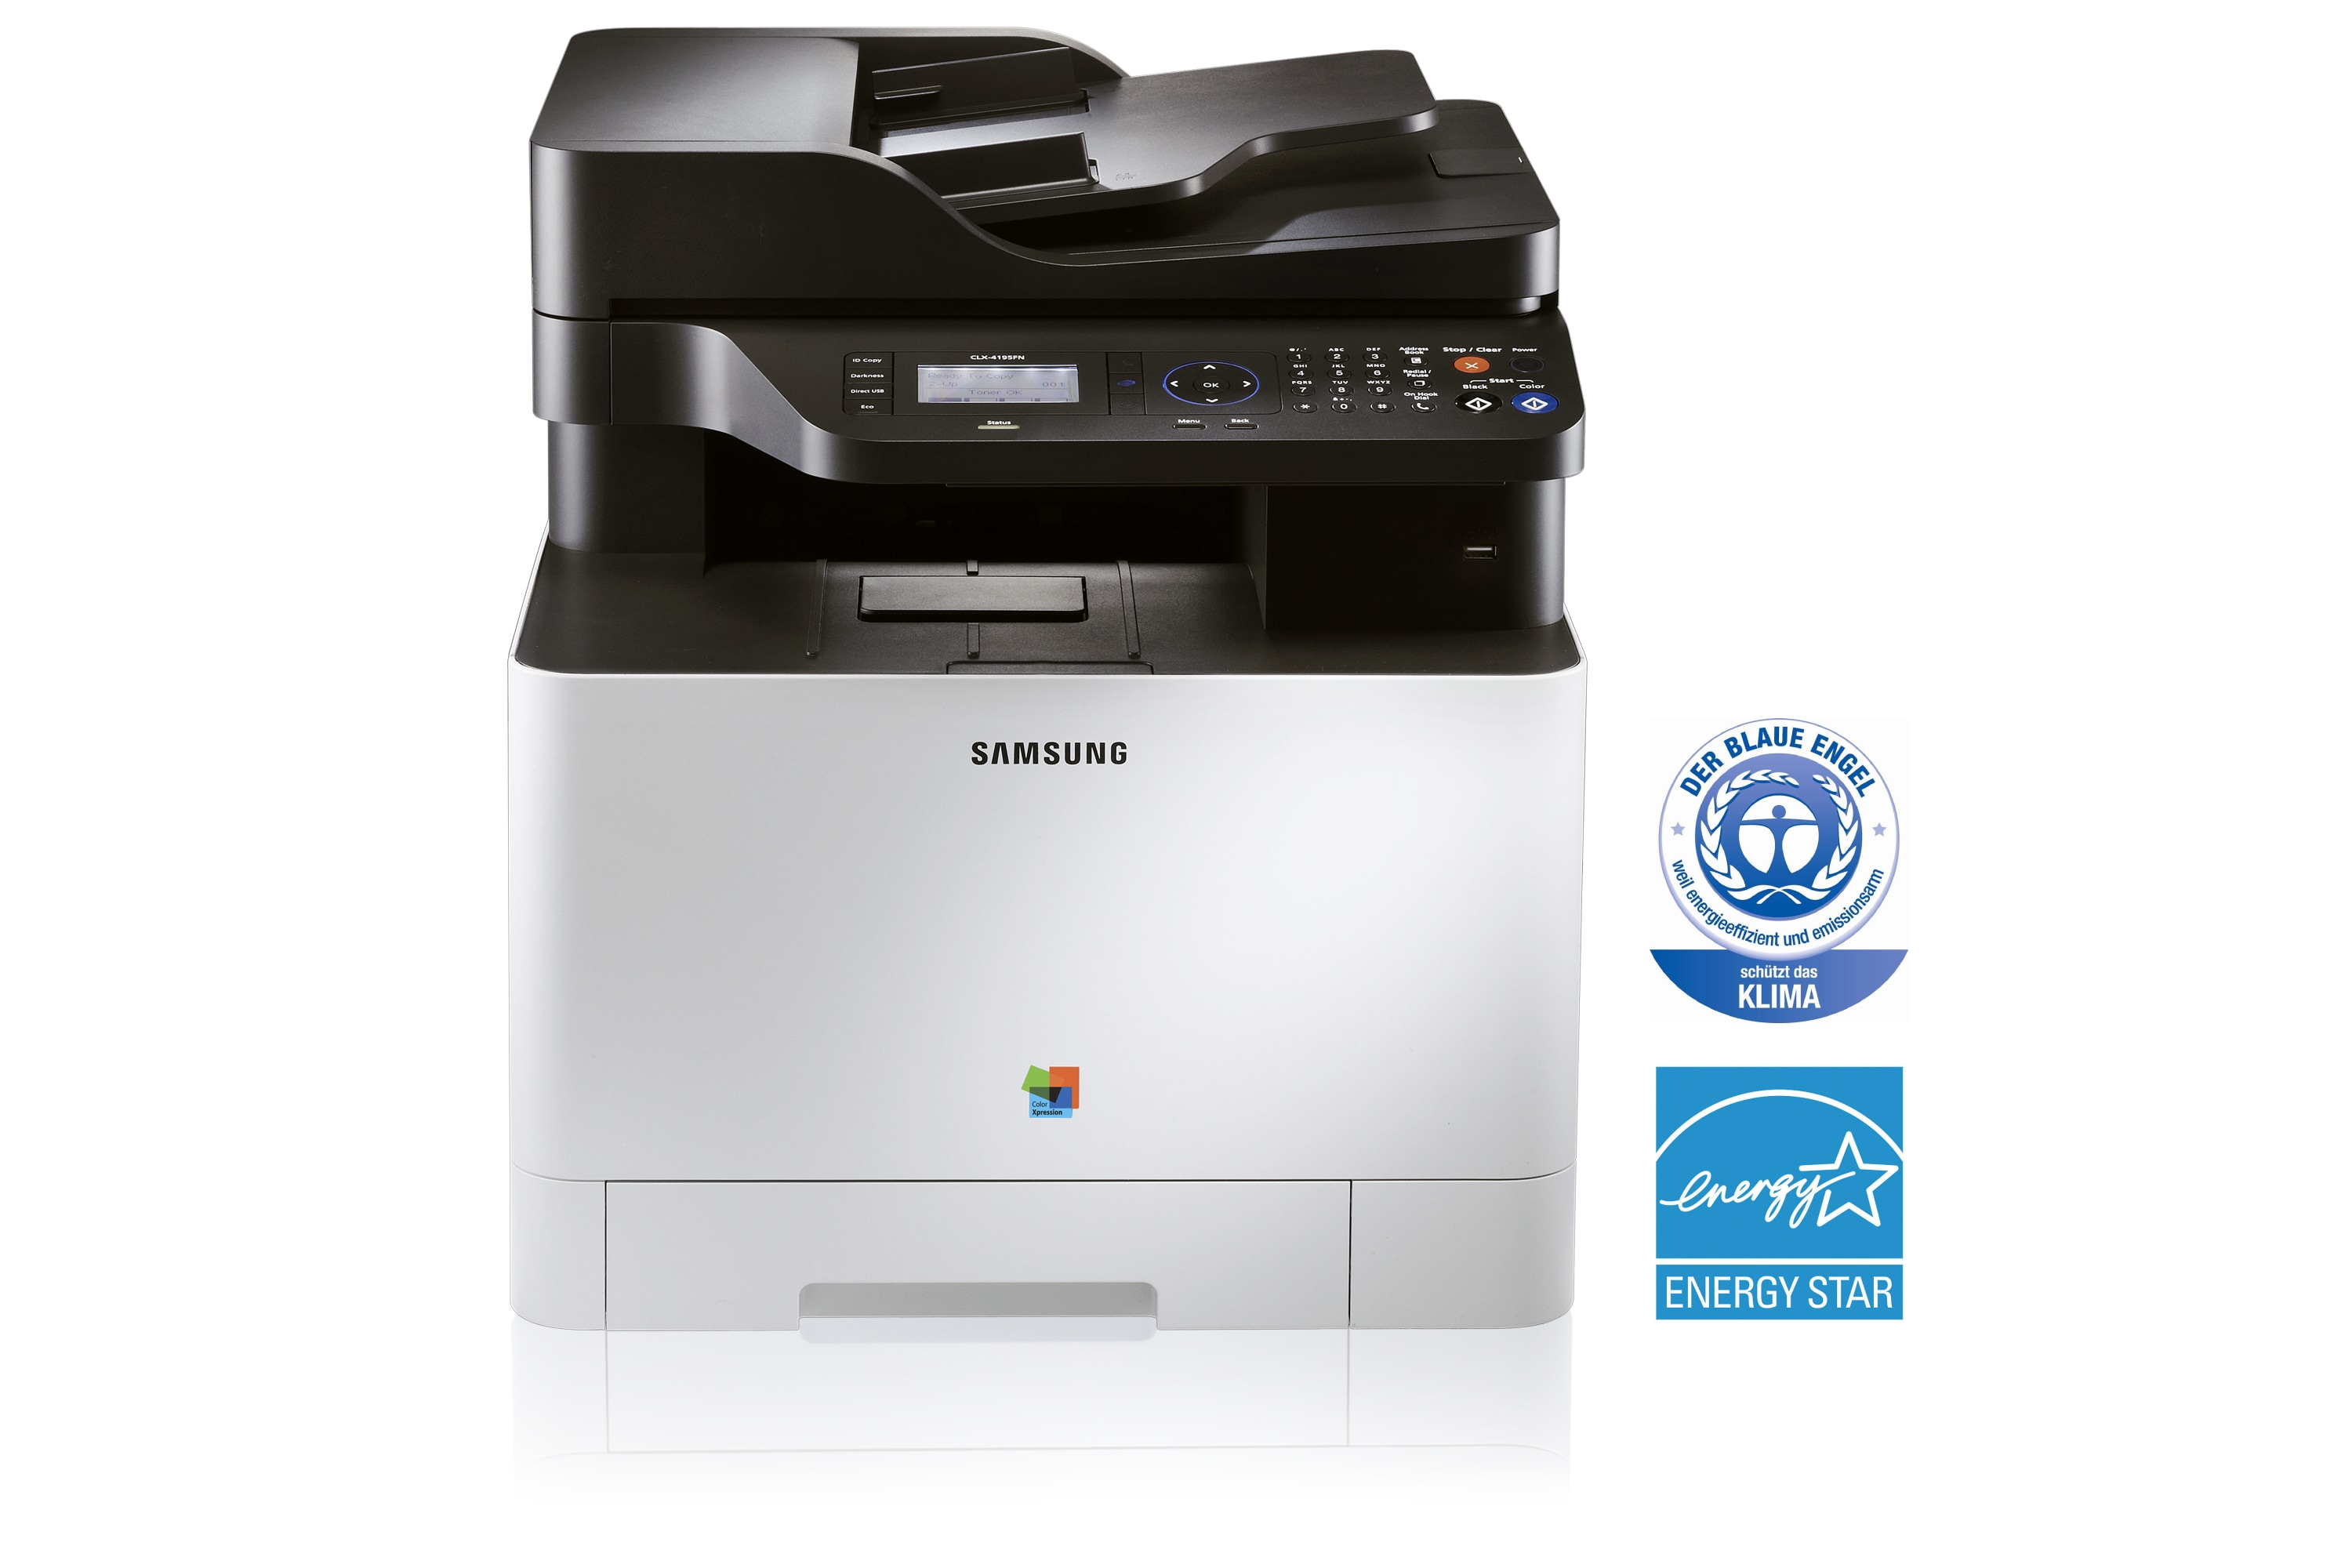 Samsung Multifunktionsdrucker Farblaser Mfps Multifunktionsdrucker Samsung